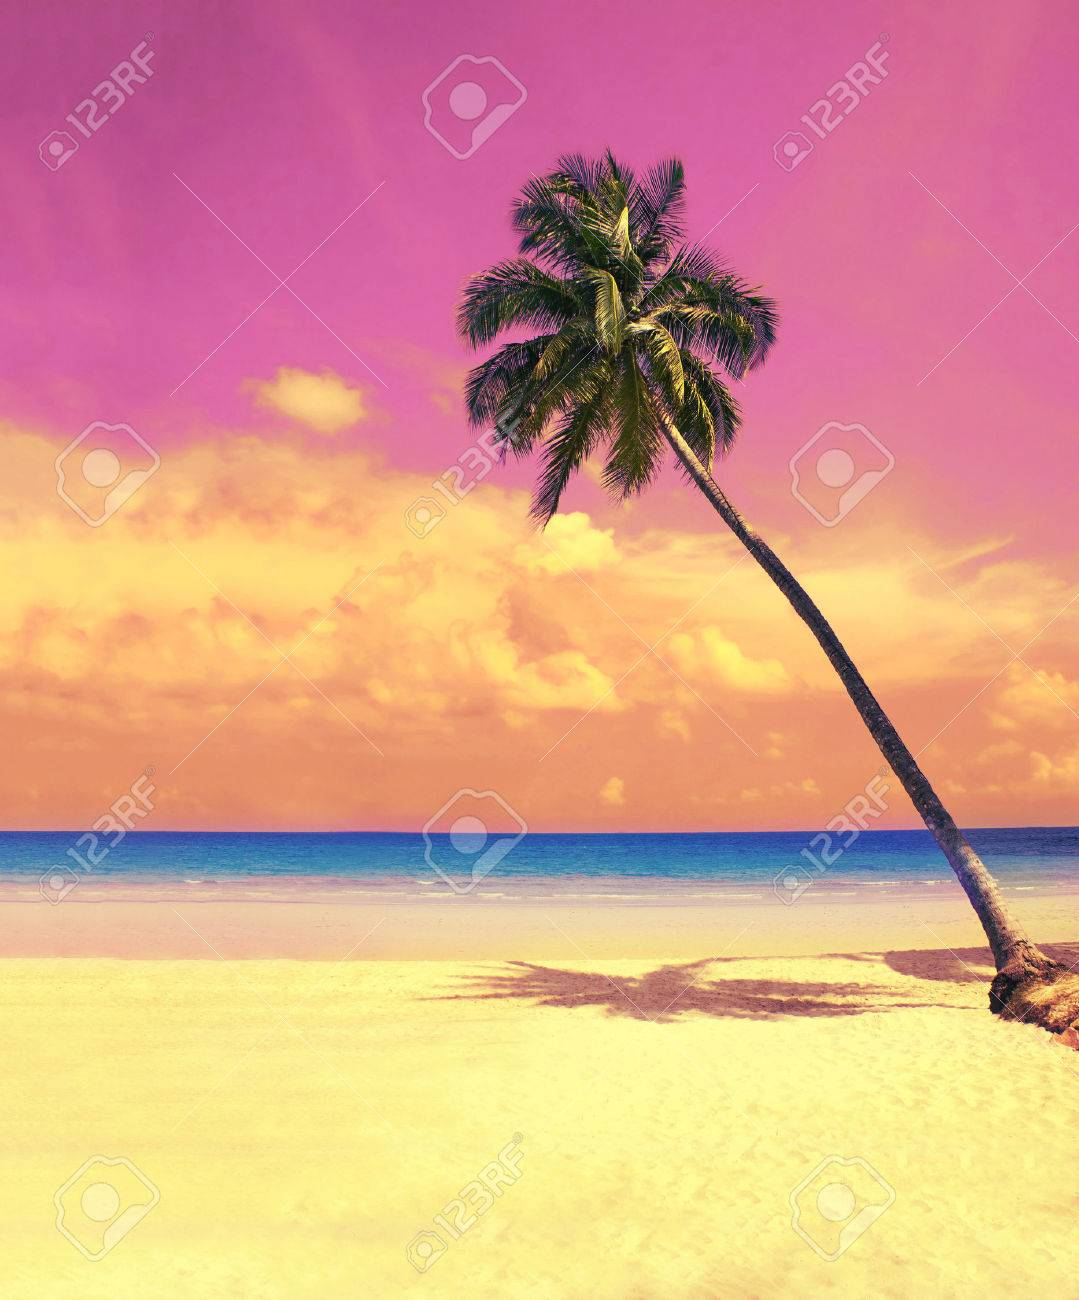 Paradise nature, palm tree over white sand beach on the tropical beach. Summer travel background with retro vintage filter. - 53586785